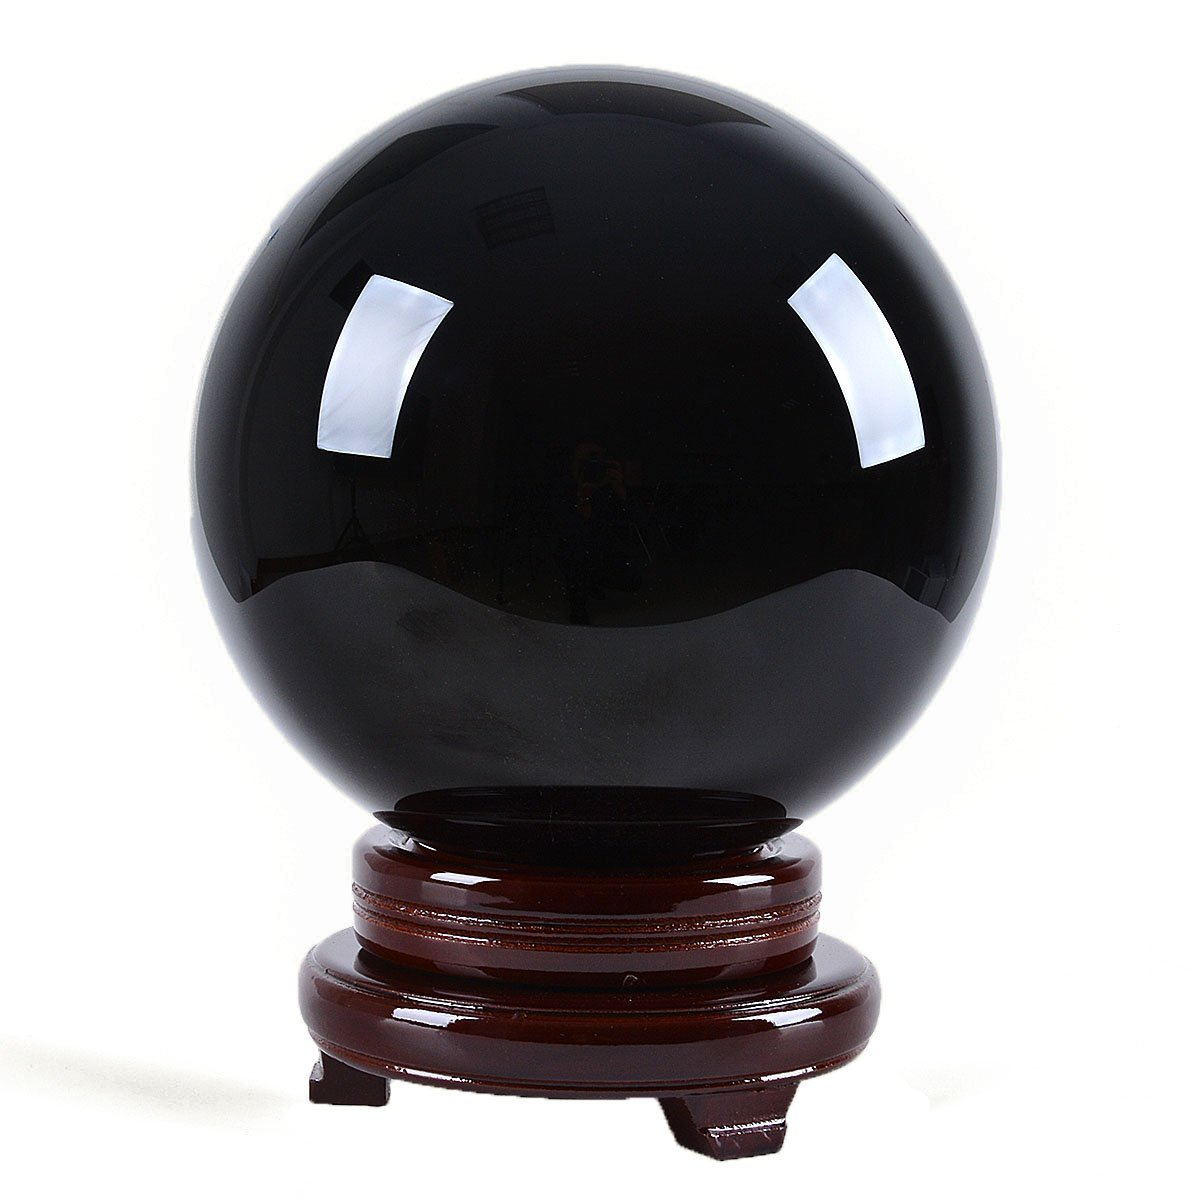 LONGWIN 200mm(8 inch) Natural Black Obsidian Divination Sphere Crystal Ball Free Wooden Stand by LONGWIN